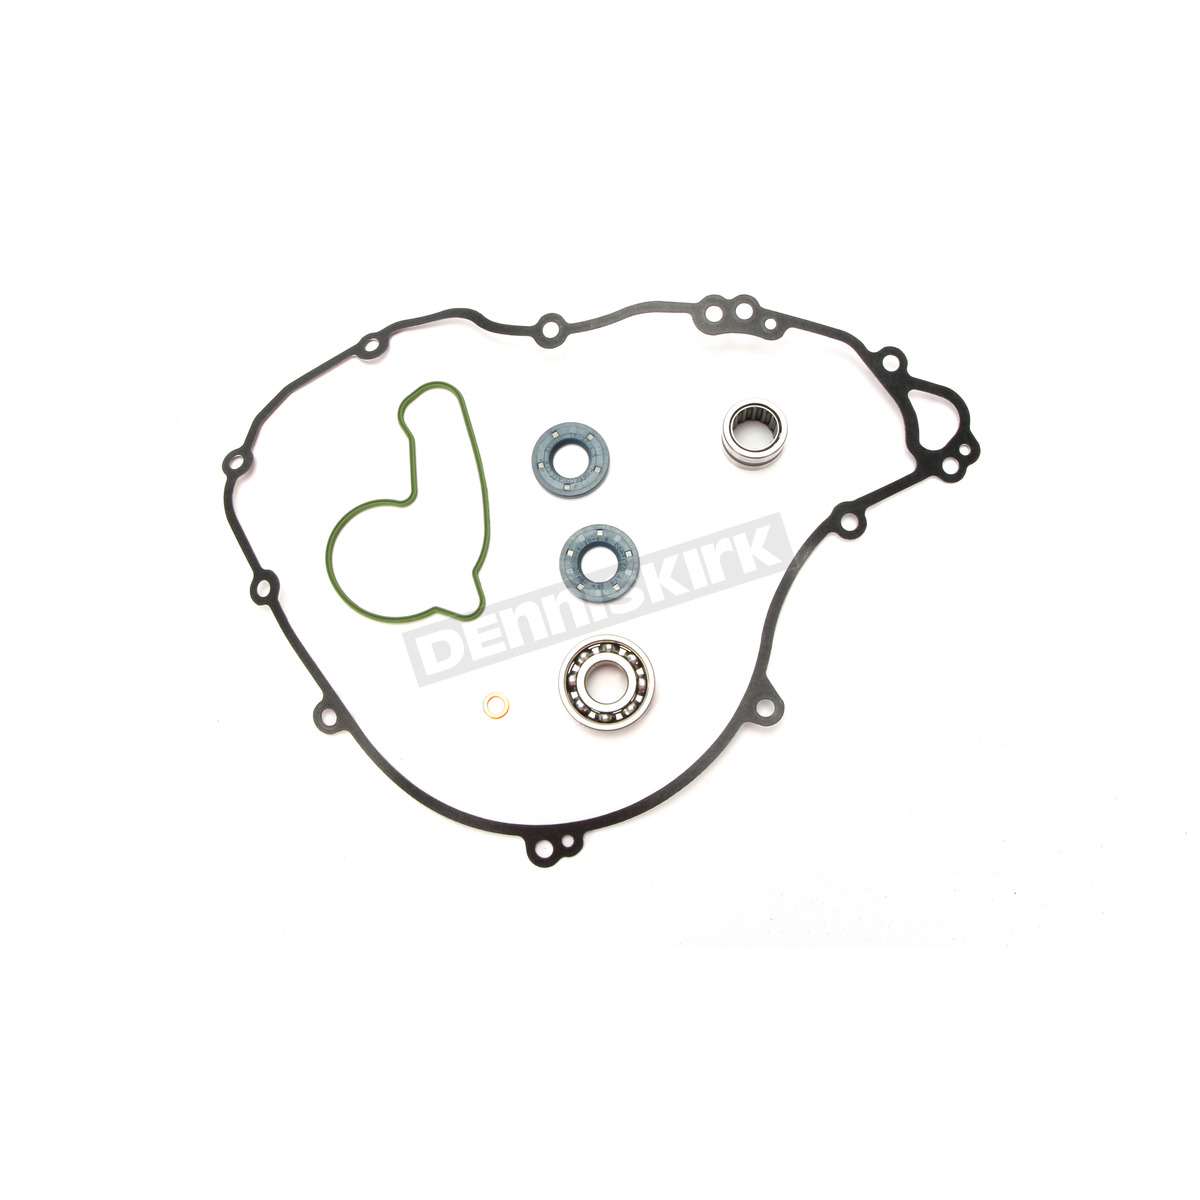 hight resolution of athena water pump gasket set p400270475012